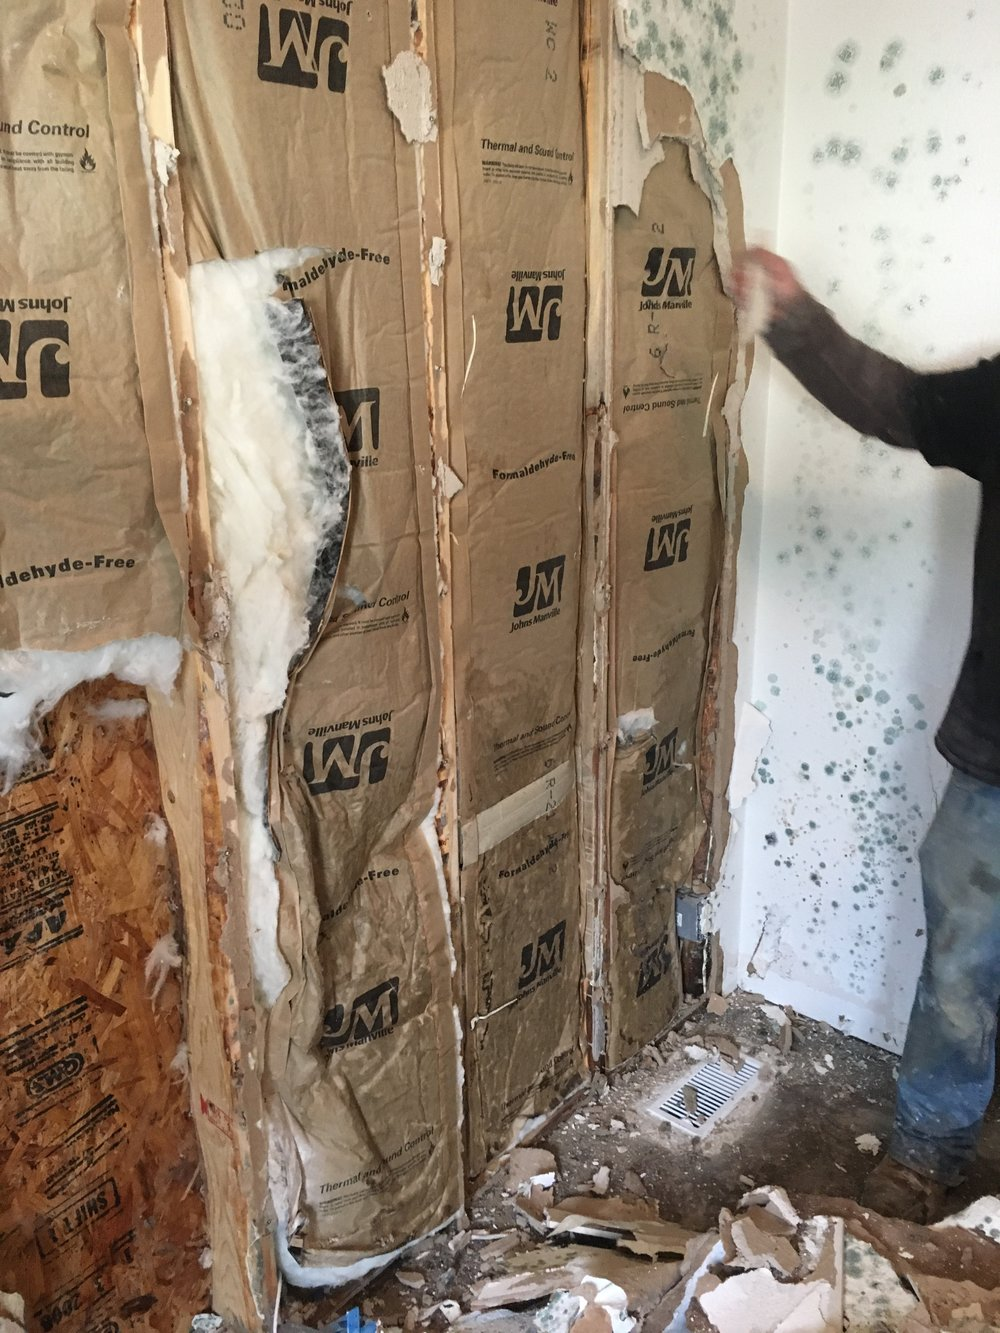 In larger mold remediation projects, all of the drywall and insulation must be removed and replaced.